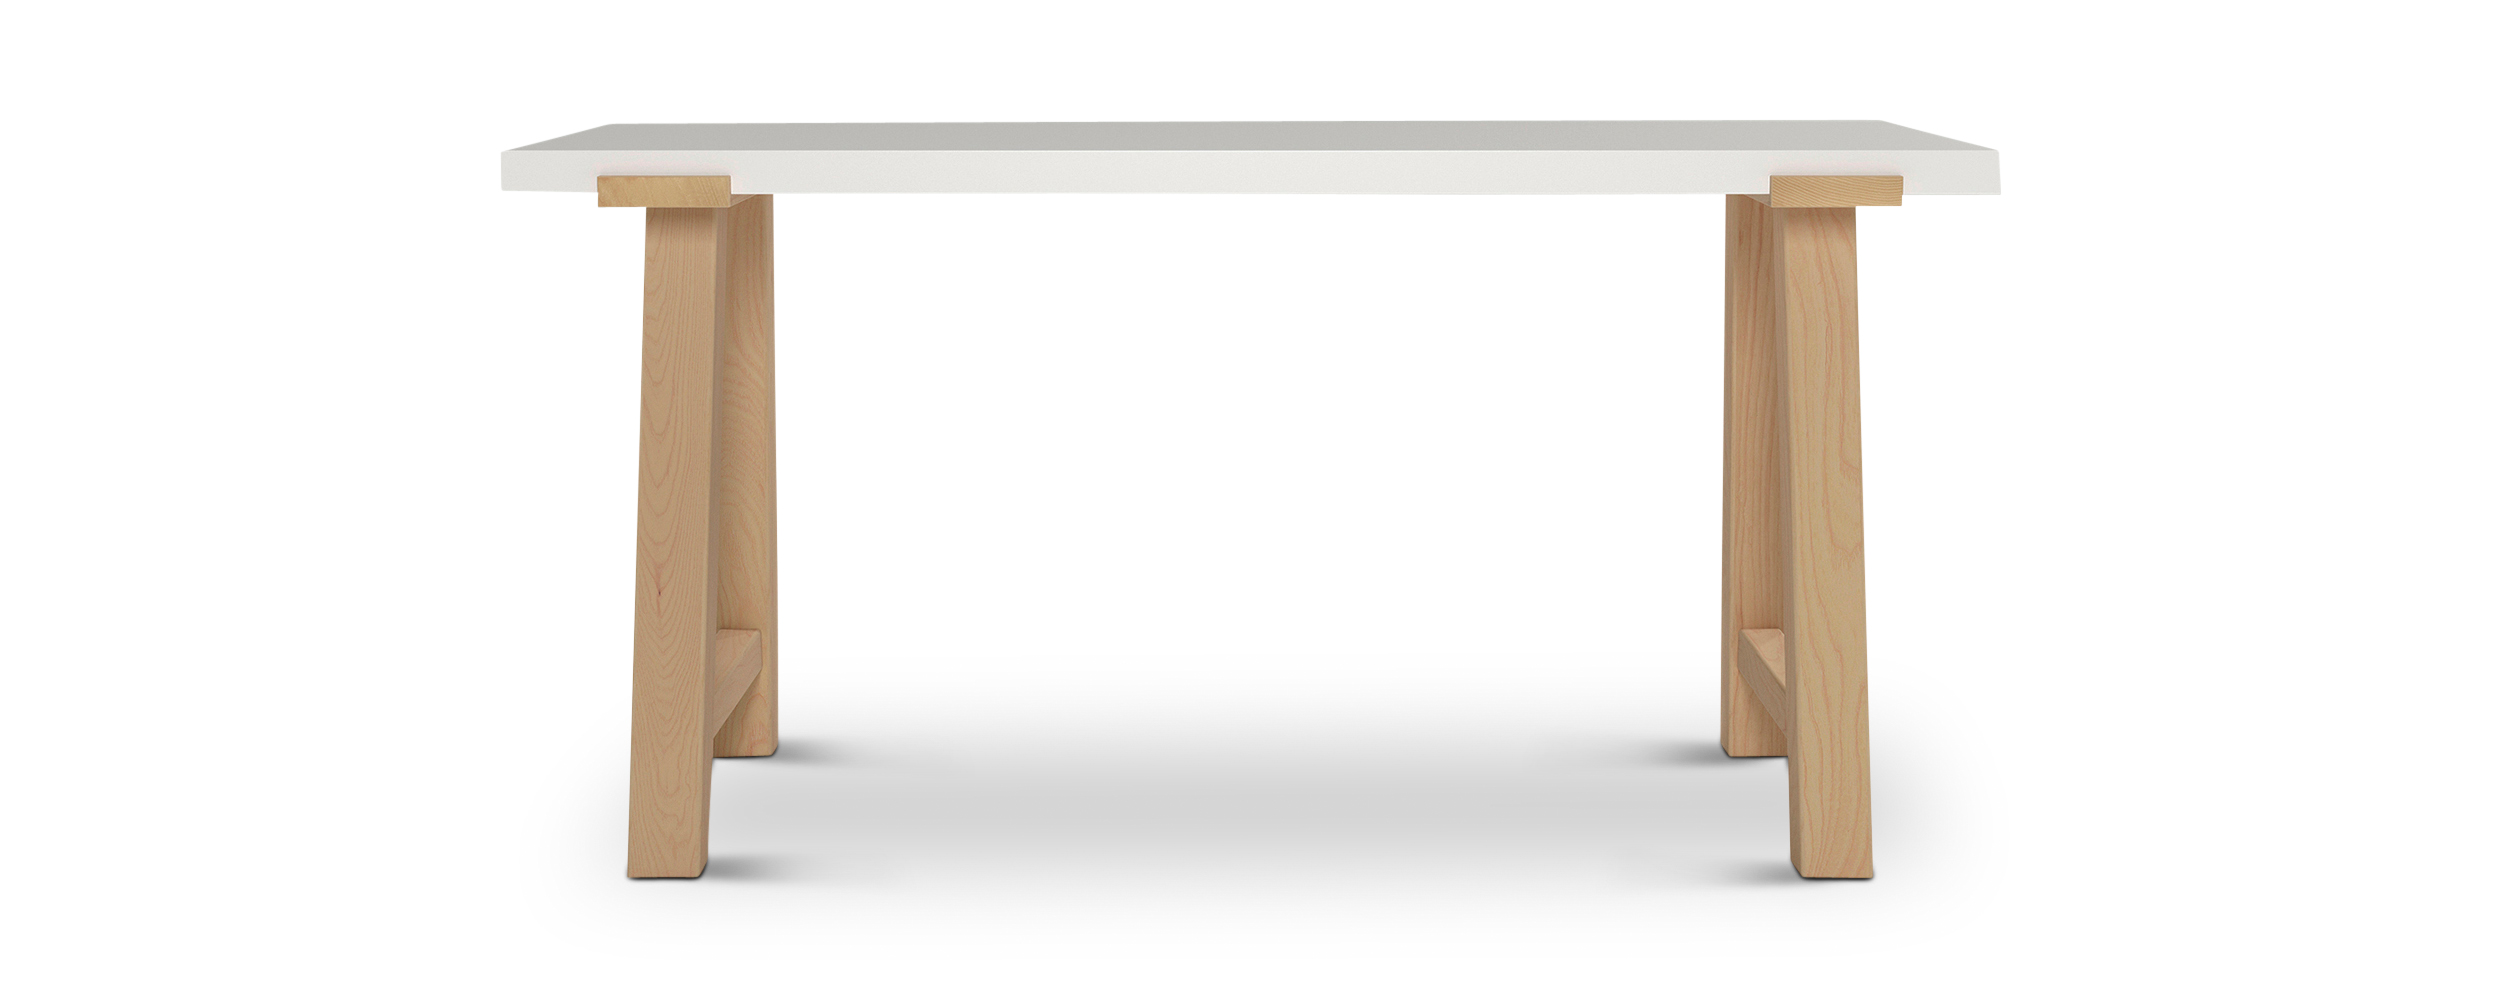 "Pulten modern scandanavian desk with solid wood legs 60"" long"